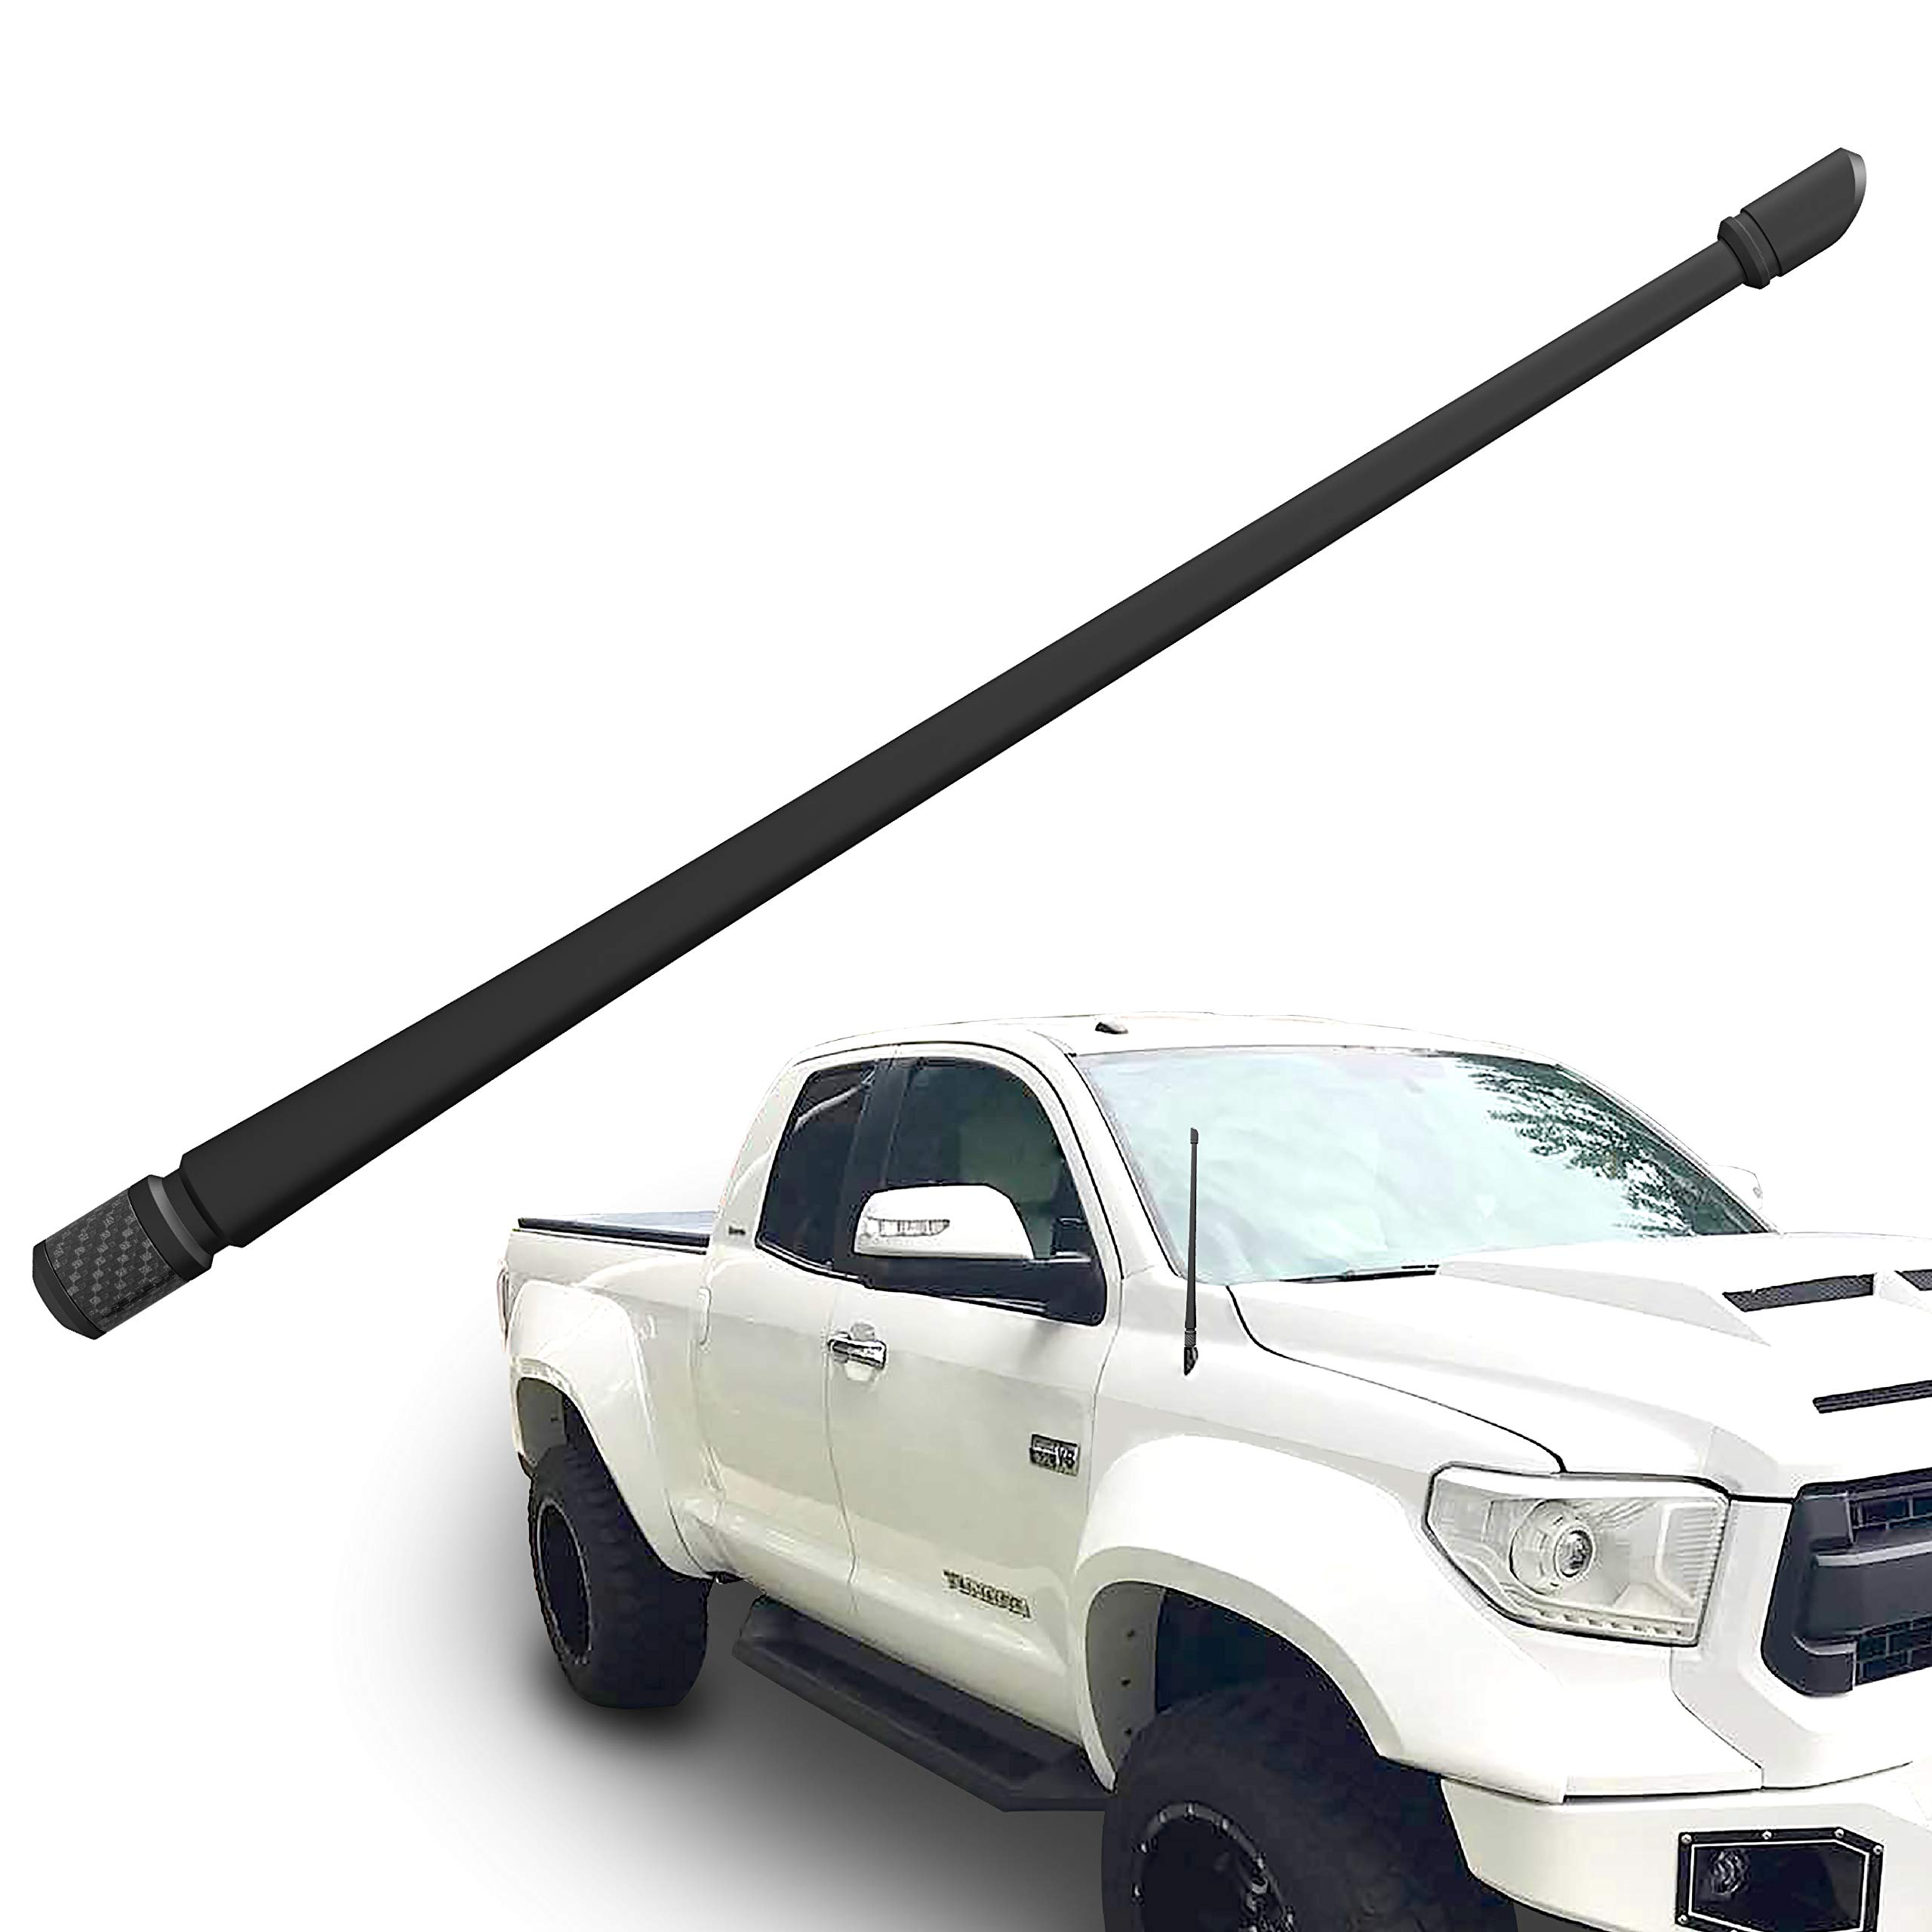 Rydonair Antenna Compatible with 2000-2018 Toyota Tundra | 13 inches Flexible Rubber Antenna Replacement | Designed for Optimized FM/AM Reception